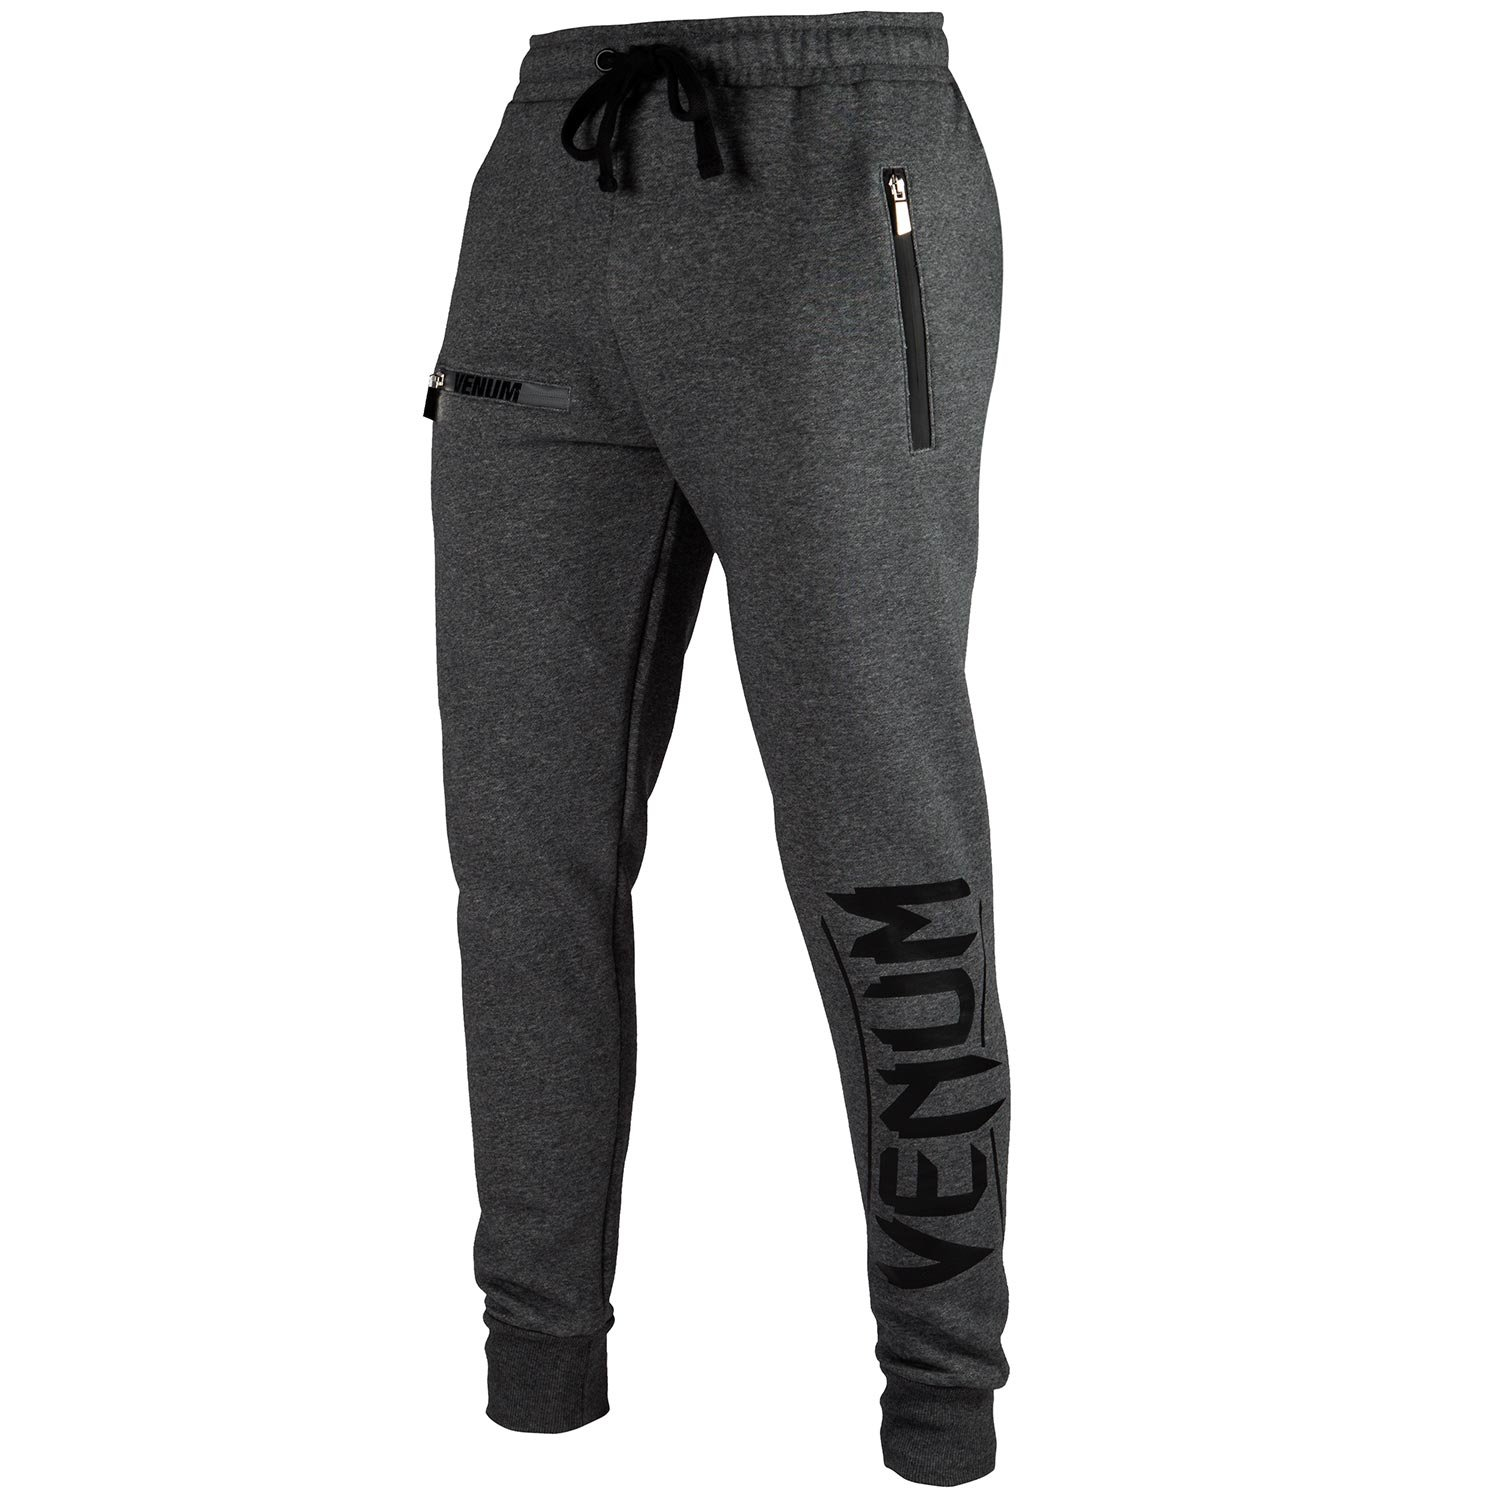 Venum Contender 2.0 Jogging Pants - Grey/Black - Medium by Venum (Image #1)